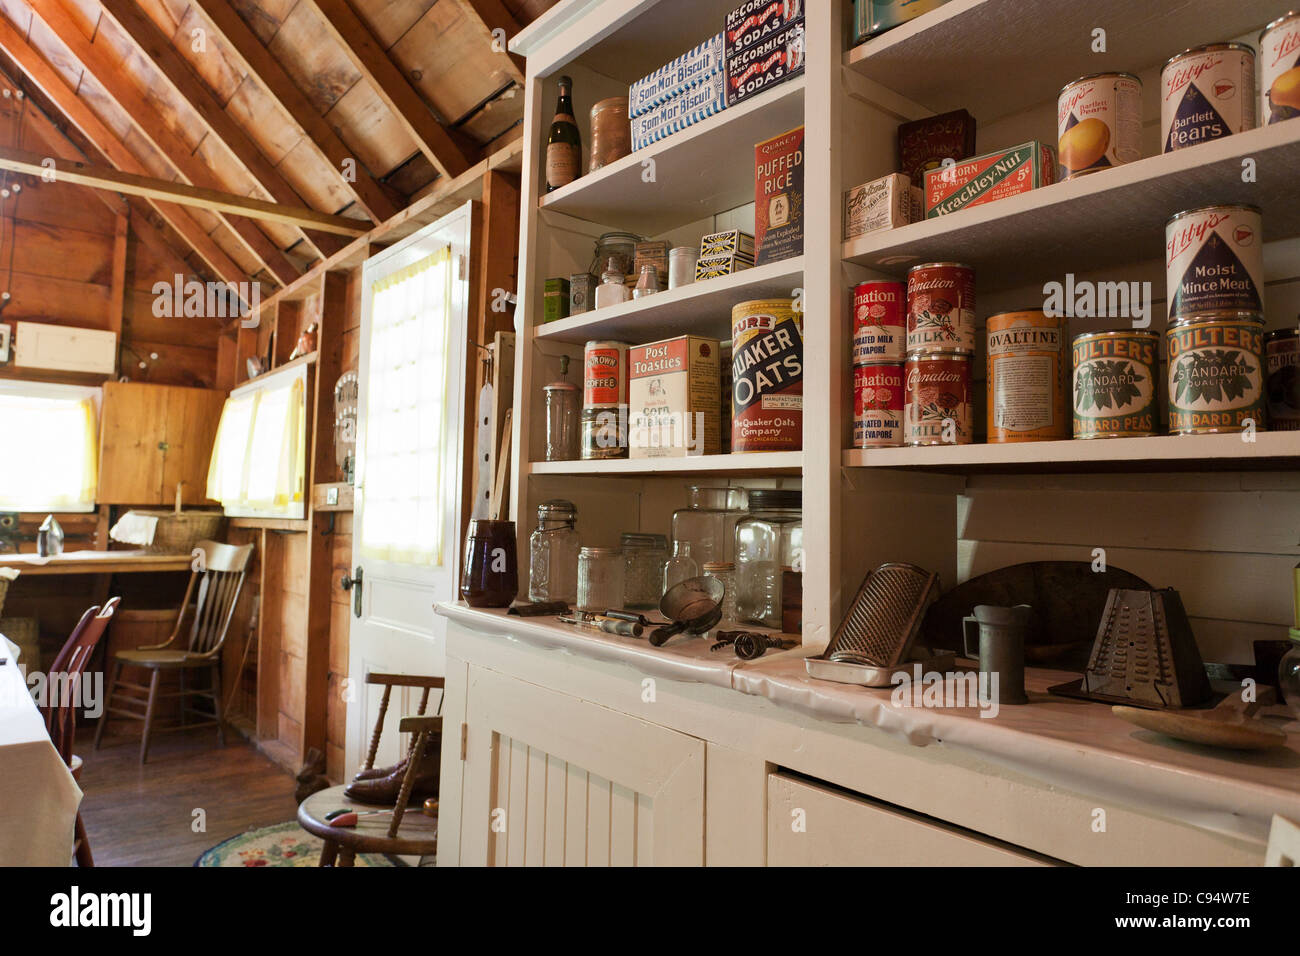 Pre-war Kitchen Shelves at the Estate. A collection of old cans, boxes and kitchen implements fill the kitchen cupboard - Stock Image